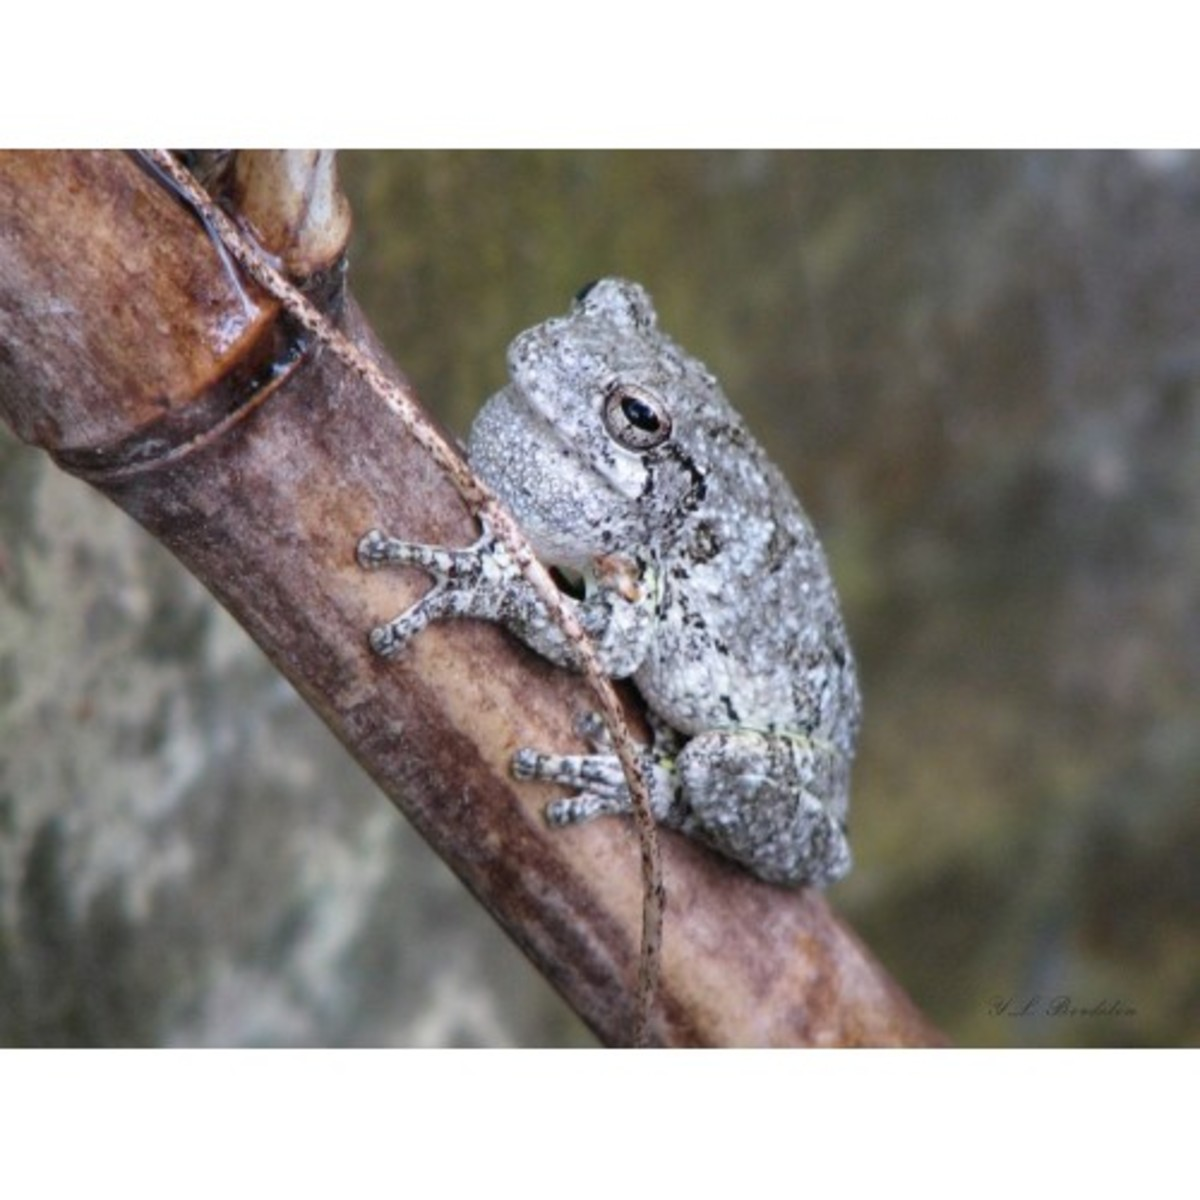 Male Gray Tree Frog calling from a rain barrel.